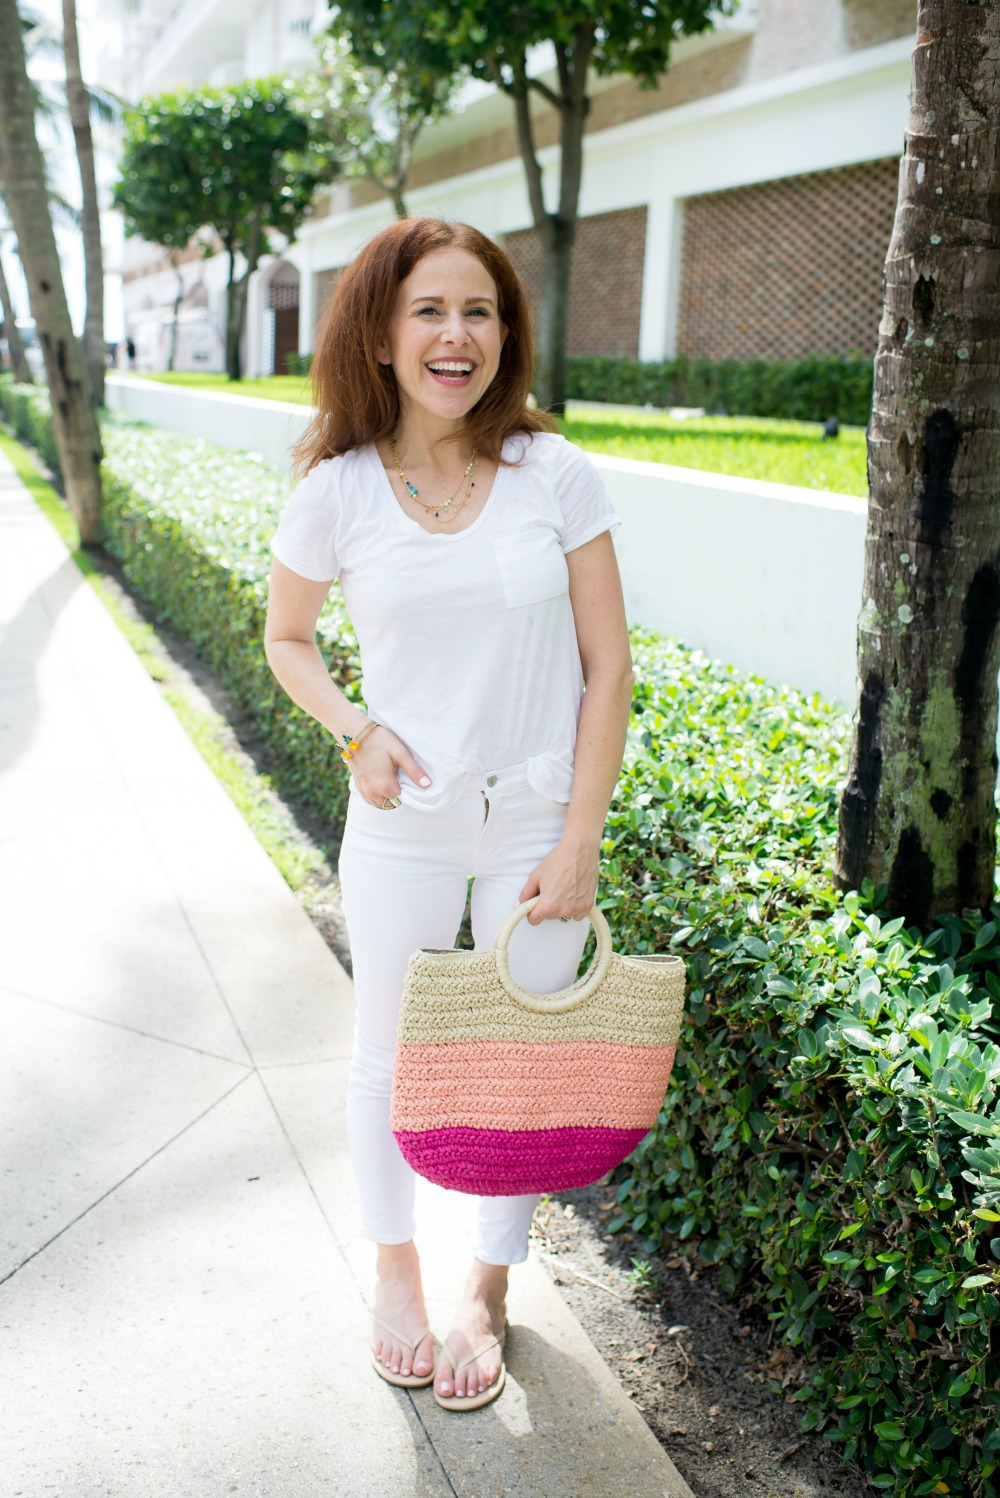 Five Creative & EASY outfit ideas wearing a white tee and jeans | How to Wear White Jeans & White Tee - outfit ideas featured by popular Florida style blogger, The Modern Savvy